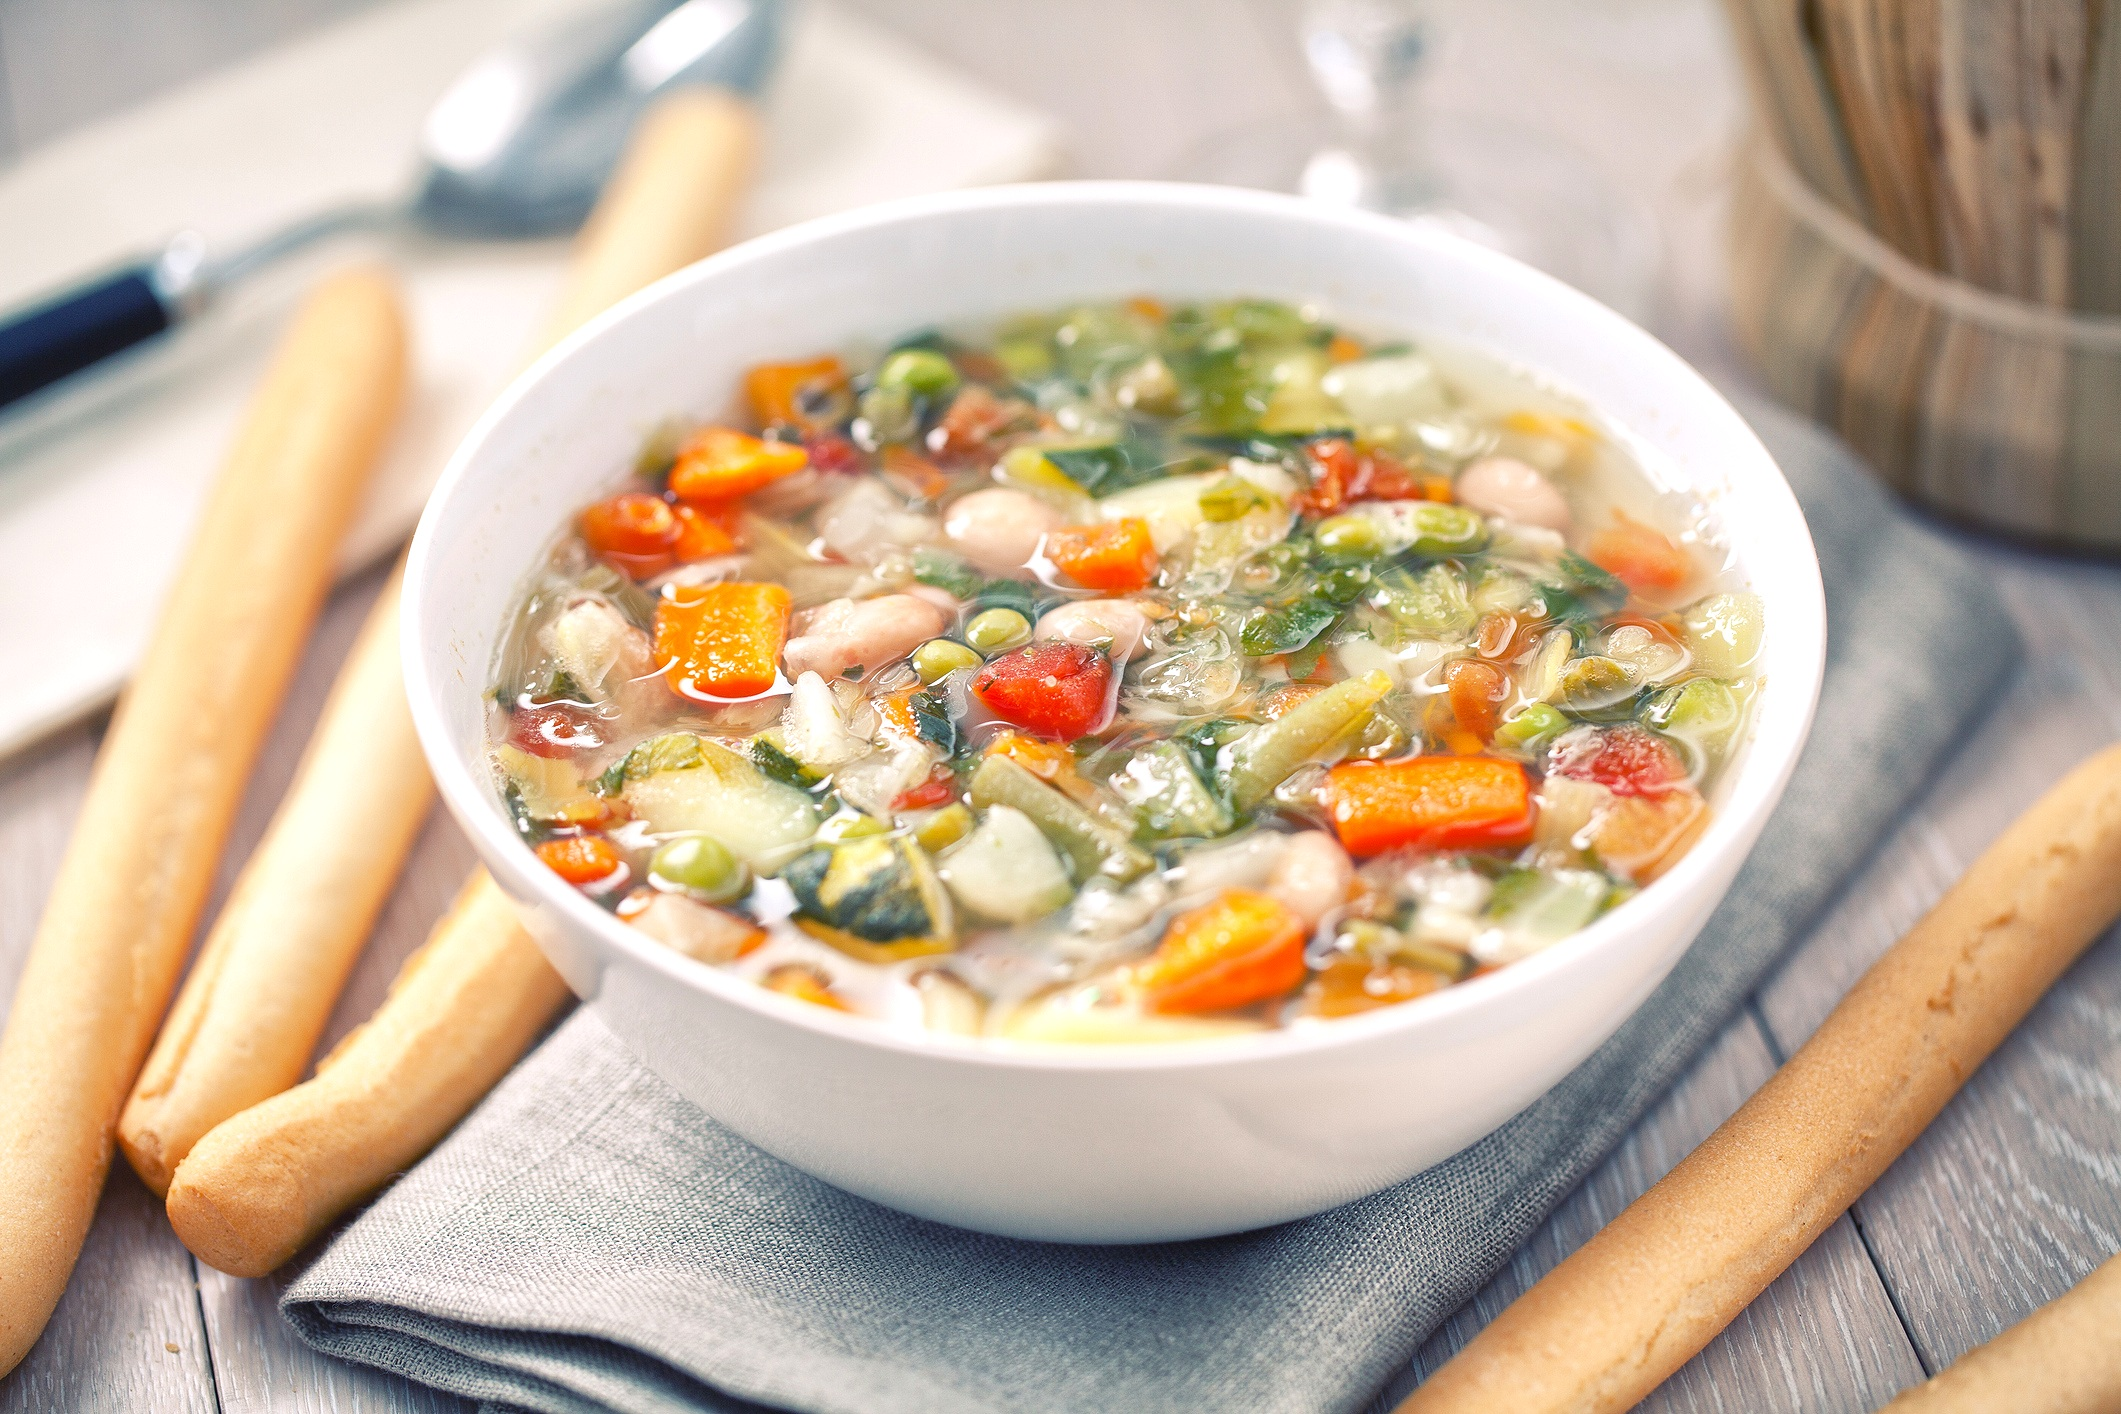 minestrone soup - a super-satisfying all-of-the-veggies bowl. We make ours with banza pasta, and white beans.Serves: 61 tablespoon olive oil, plus more to serve1 small onion, finely chopped2 medium carrots, finely chopped2 medium celery stalks, finely chopped2 medium cloves garlic, peeled and smashedKosher salt and ground black pepper¼ teaspoon crushed red pepper flakes2 bay leaves1 jar 16 oz not just pasta sauce1 ½ quart chicken stock (or water if vegetarian)1 parmesan rind, plus shaved parmesan to serve1 cup chopped green beans (½ inch pieces)1 cup eat banza macaroni1 15 oz can cannellini beans, rinsed and drained1 cup frozen peas2 cups baby spinach1 tablespoon red wine vinegar, plus more to tasteTorn basil, to serve1. In a large heavy bottomed pot or dutch oven, heat the oil over medium heat until shimmering.2. Add the onion, carrots, celery, garlic, ½ teaspoon salt, ¼ teaspoon black pepper, ¼ teaspoon red pepper flakes, and 2 bay leaves, cook until softened, about 7-10 minutes.3. Stir in not just pasta sauce, scraping up any brown bits at the bottom of the pot, chicken stock, and parm rind, bring to a boil.4. Add the green beans, pasta, and 1 teaspoon of salt and cook, maintaining a steady simmer, until the beans are tender and the pasta is al dente, 8-10 minutes, adding the cannellini beans and peas halfway through.5. Stir in the spinach until wilted and add the red wine vinegar.6. Season to taste and garnish with freshly torn basil, grated parmesan, and drizzle with olive oil.